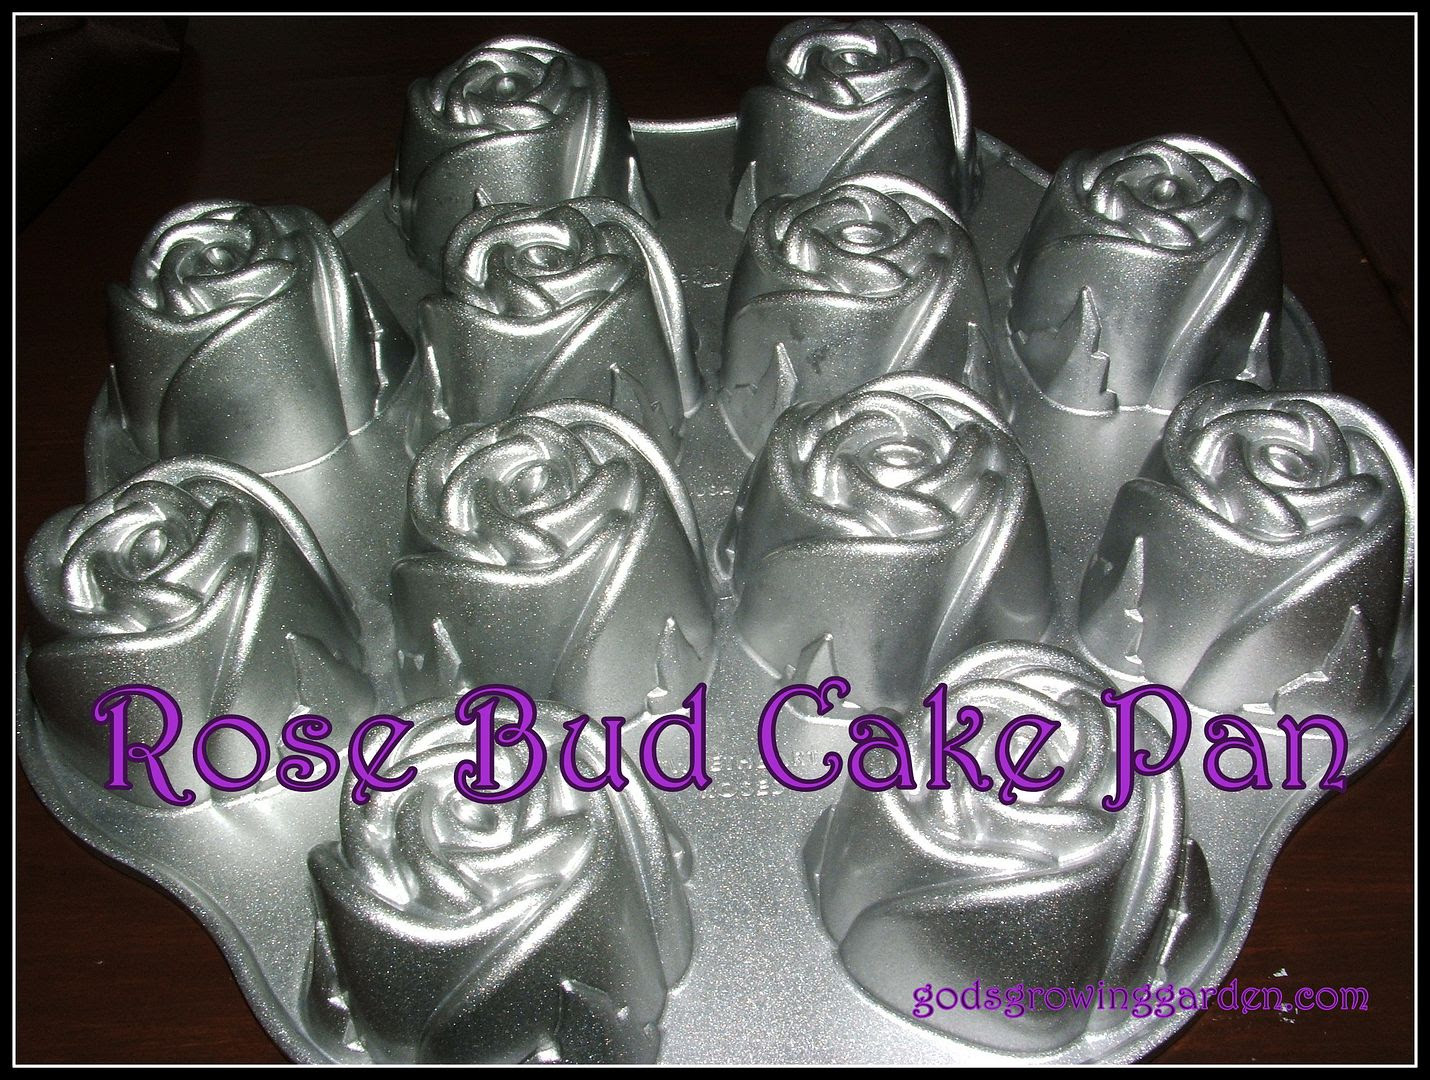 Rose Bud Cake Pan by Angie Ouellette-Tower for godsgrowinggarden.com photo 014_zps713911ec.jpg